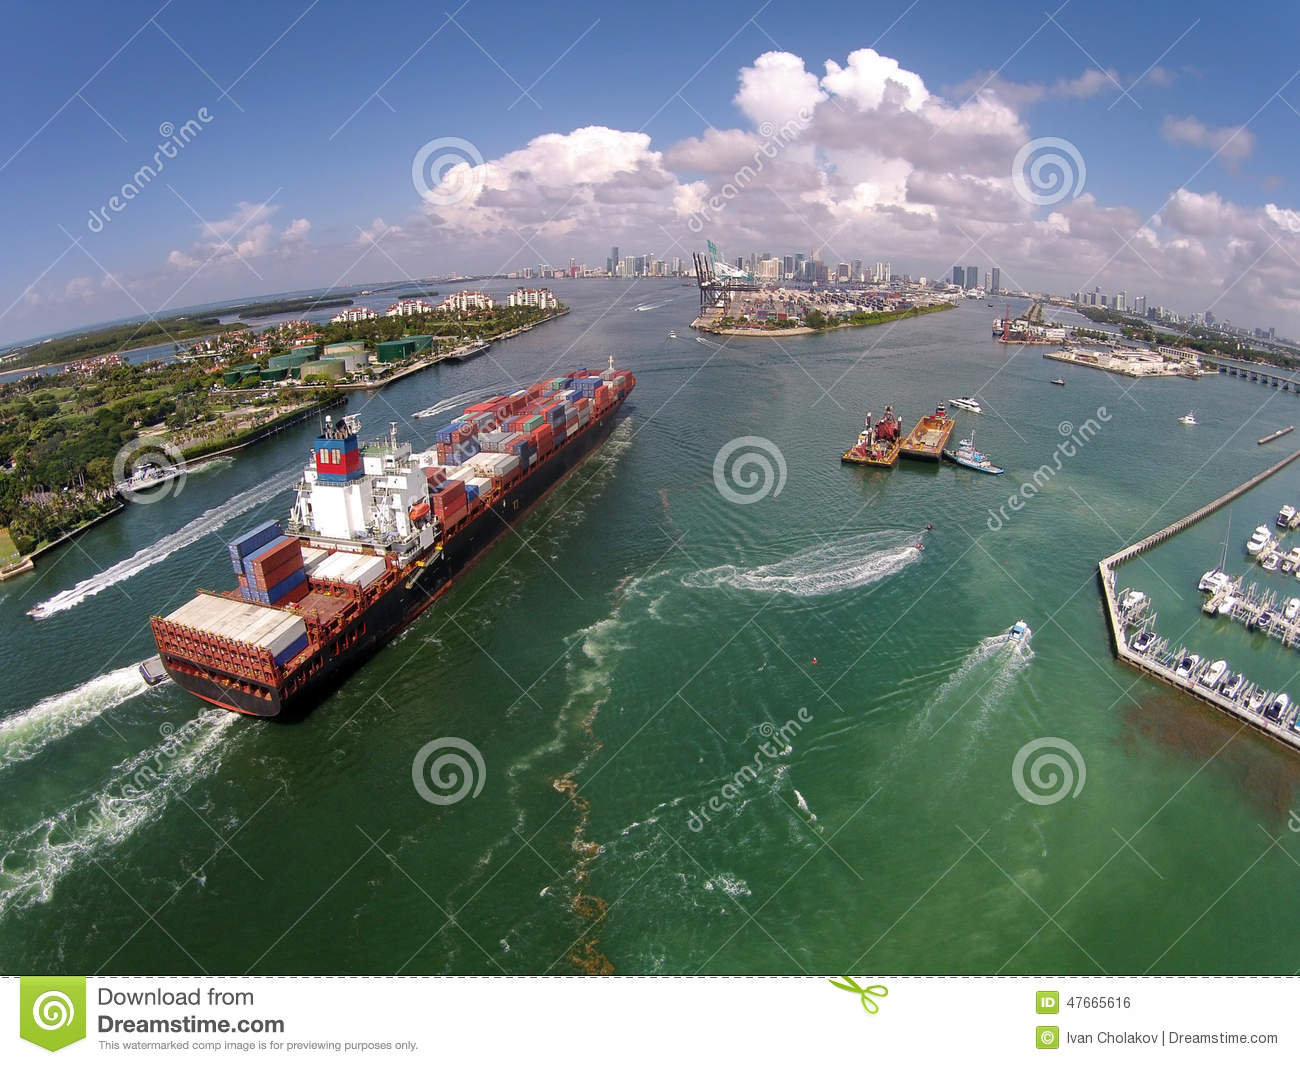 Cargo Ship Enters Port Aerial View Stock Photo Image 47665616